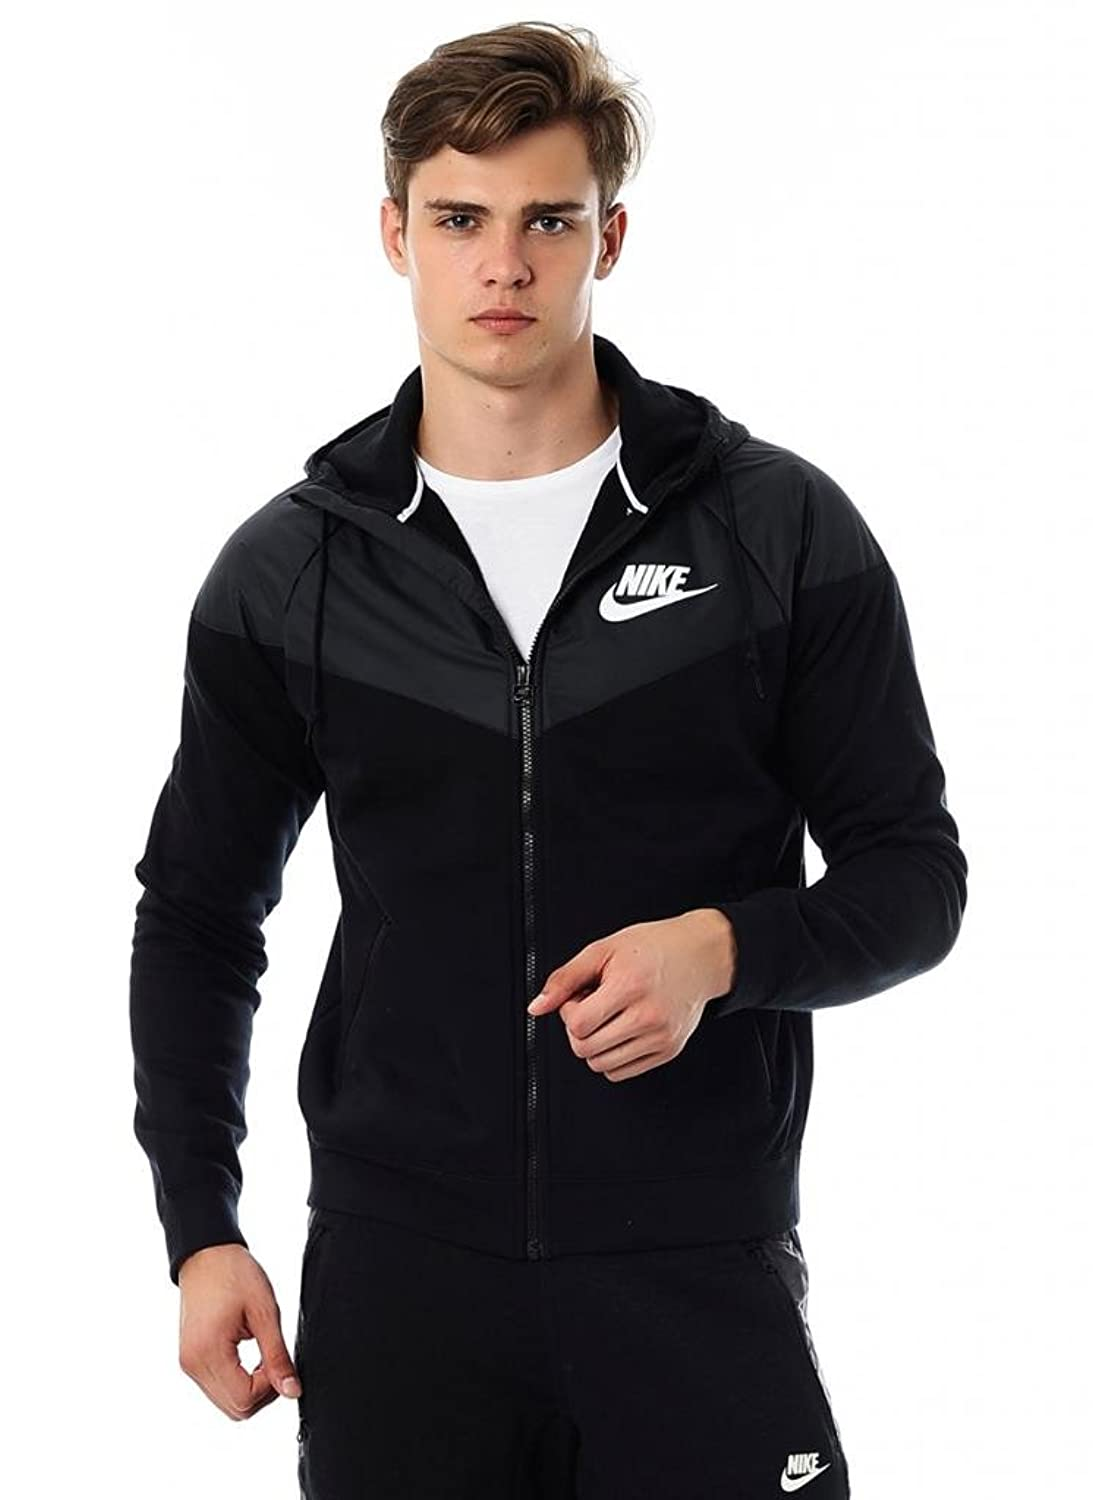 NIKE WINDRUNNER-FLEECE MIX 614516-010 free shipping 30397 sop in stock 10pcs lot